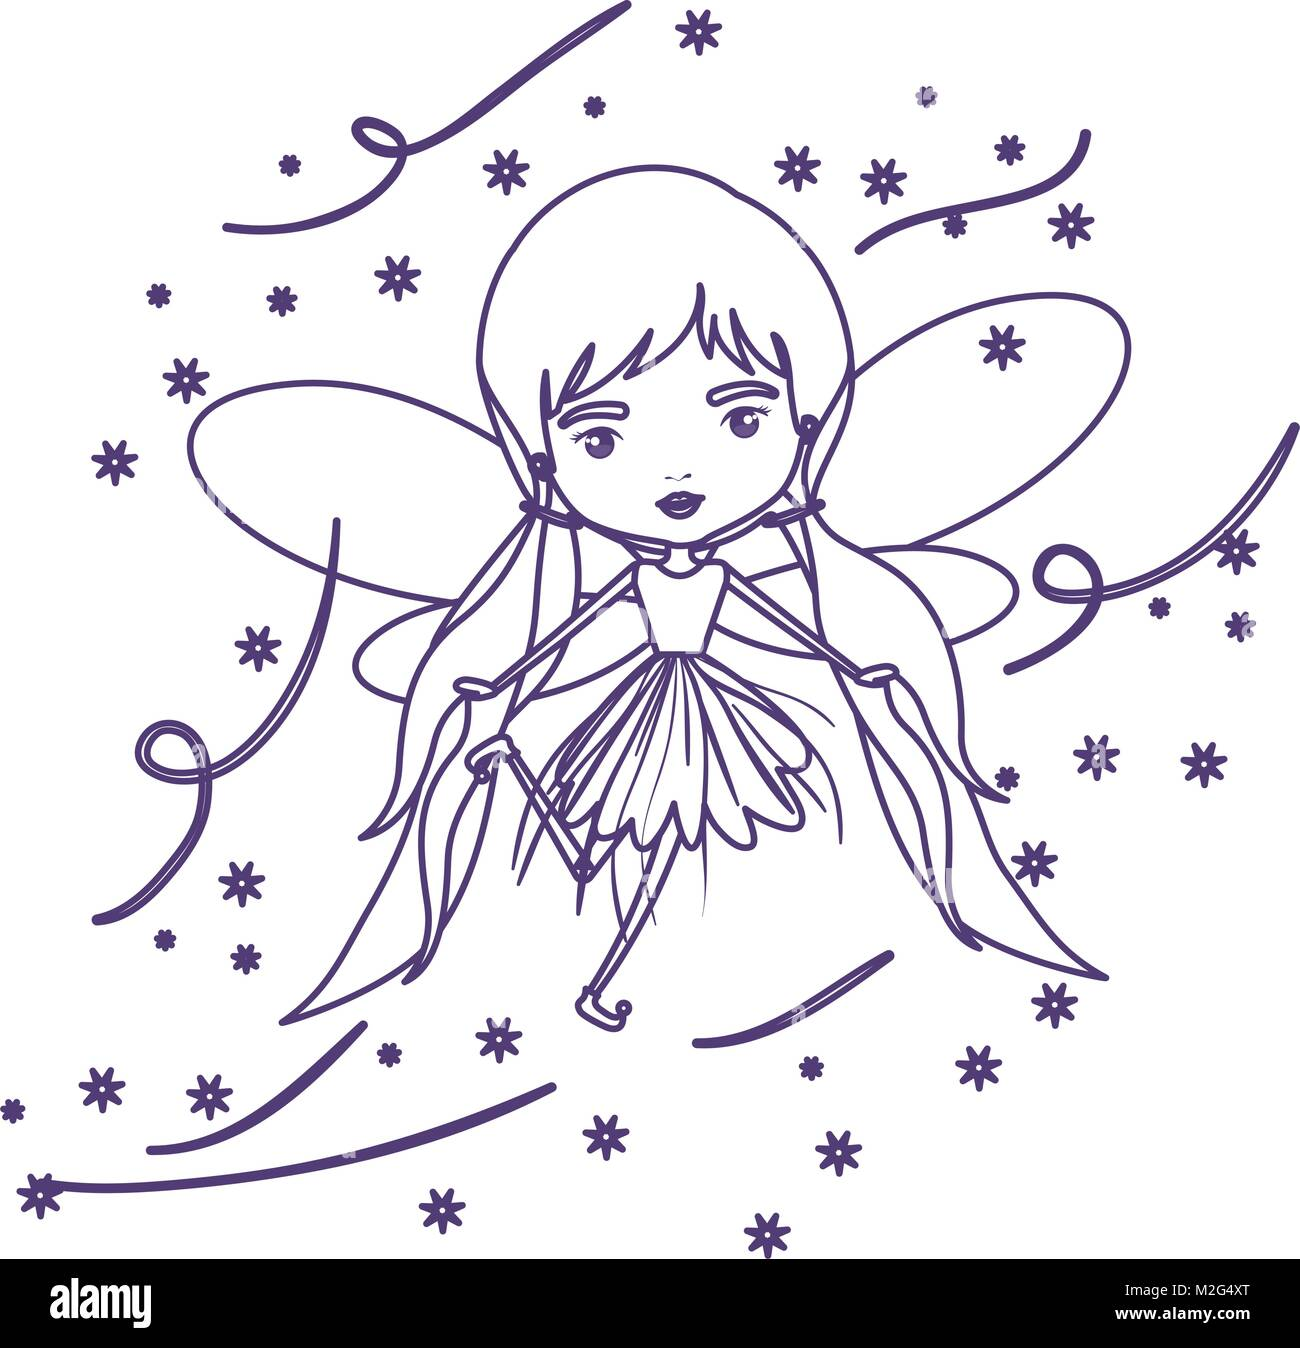 girly fairy flying with wings and pigtails hairstyle and stars in purple contour over white background - Stock Image